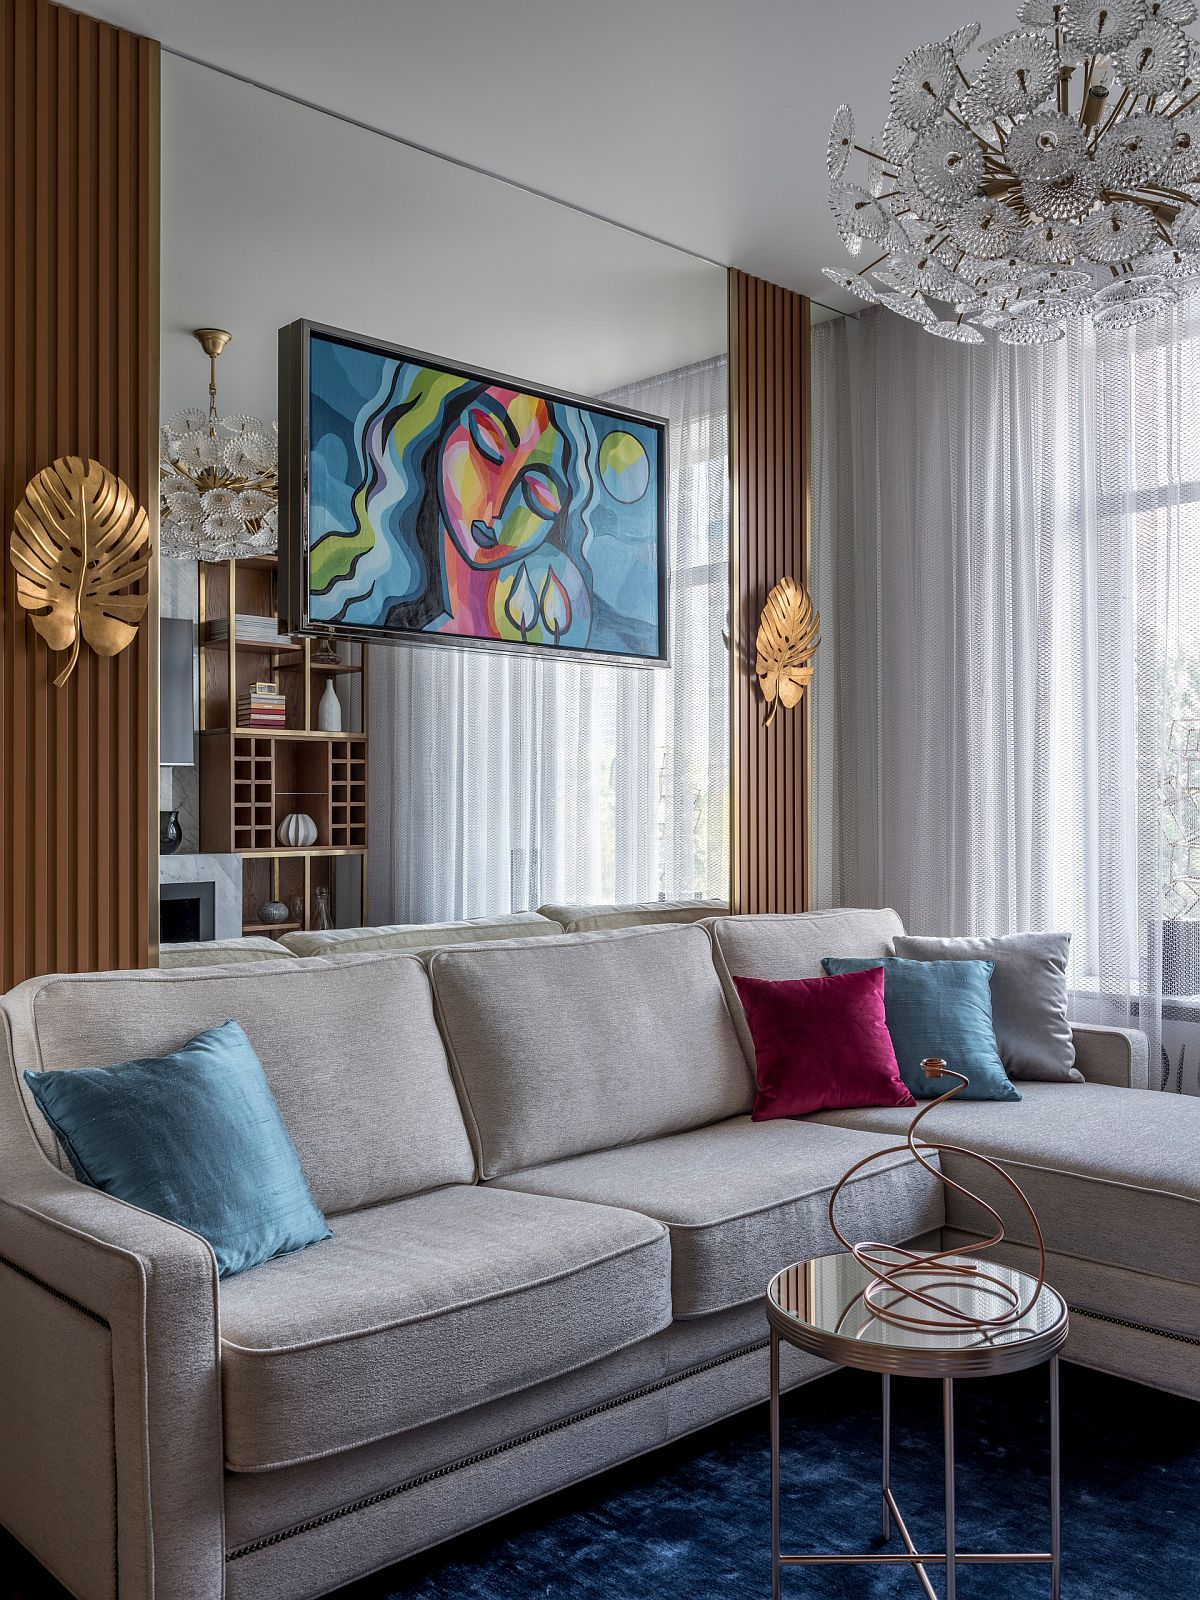 Using accent pillows in multple hues in the modern living room gives it a brighter vibe